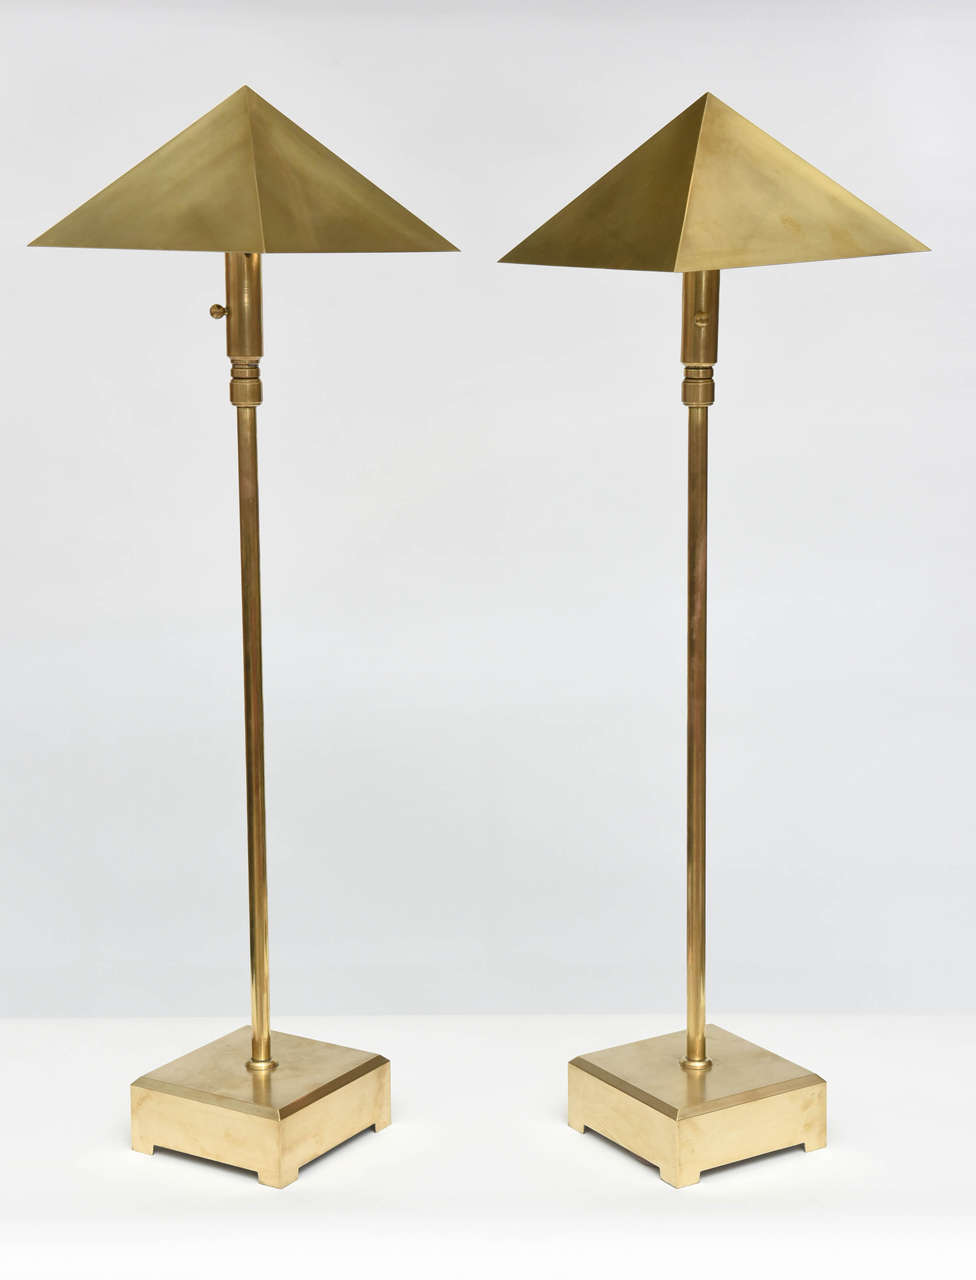 The pyramidal shade above an adjustable pole to extend or shorten the overall length, on a square plinth with bracket feet 40.5 without extension, extents to 64